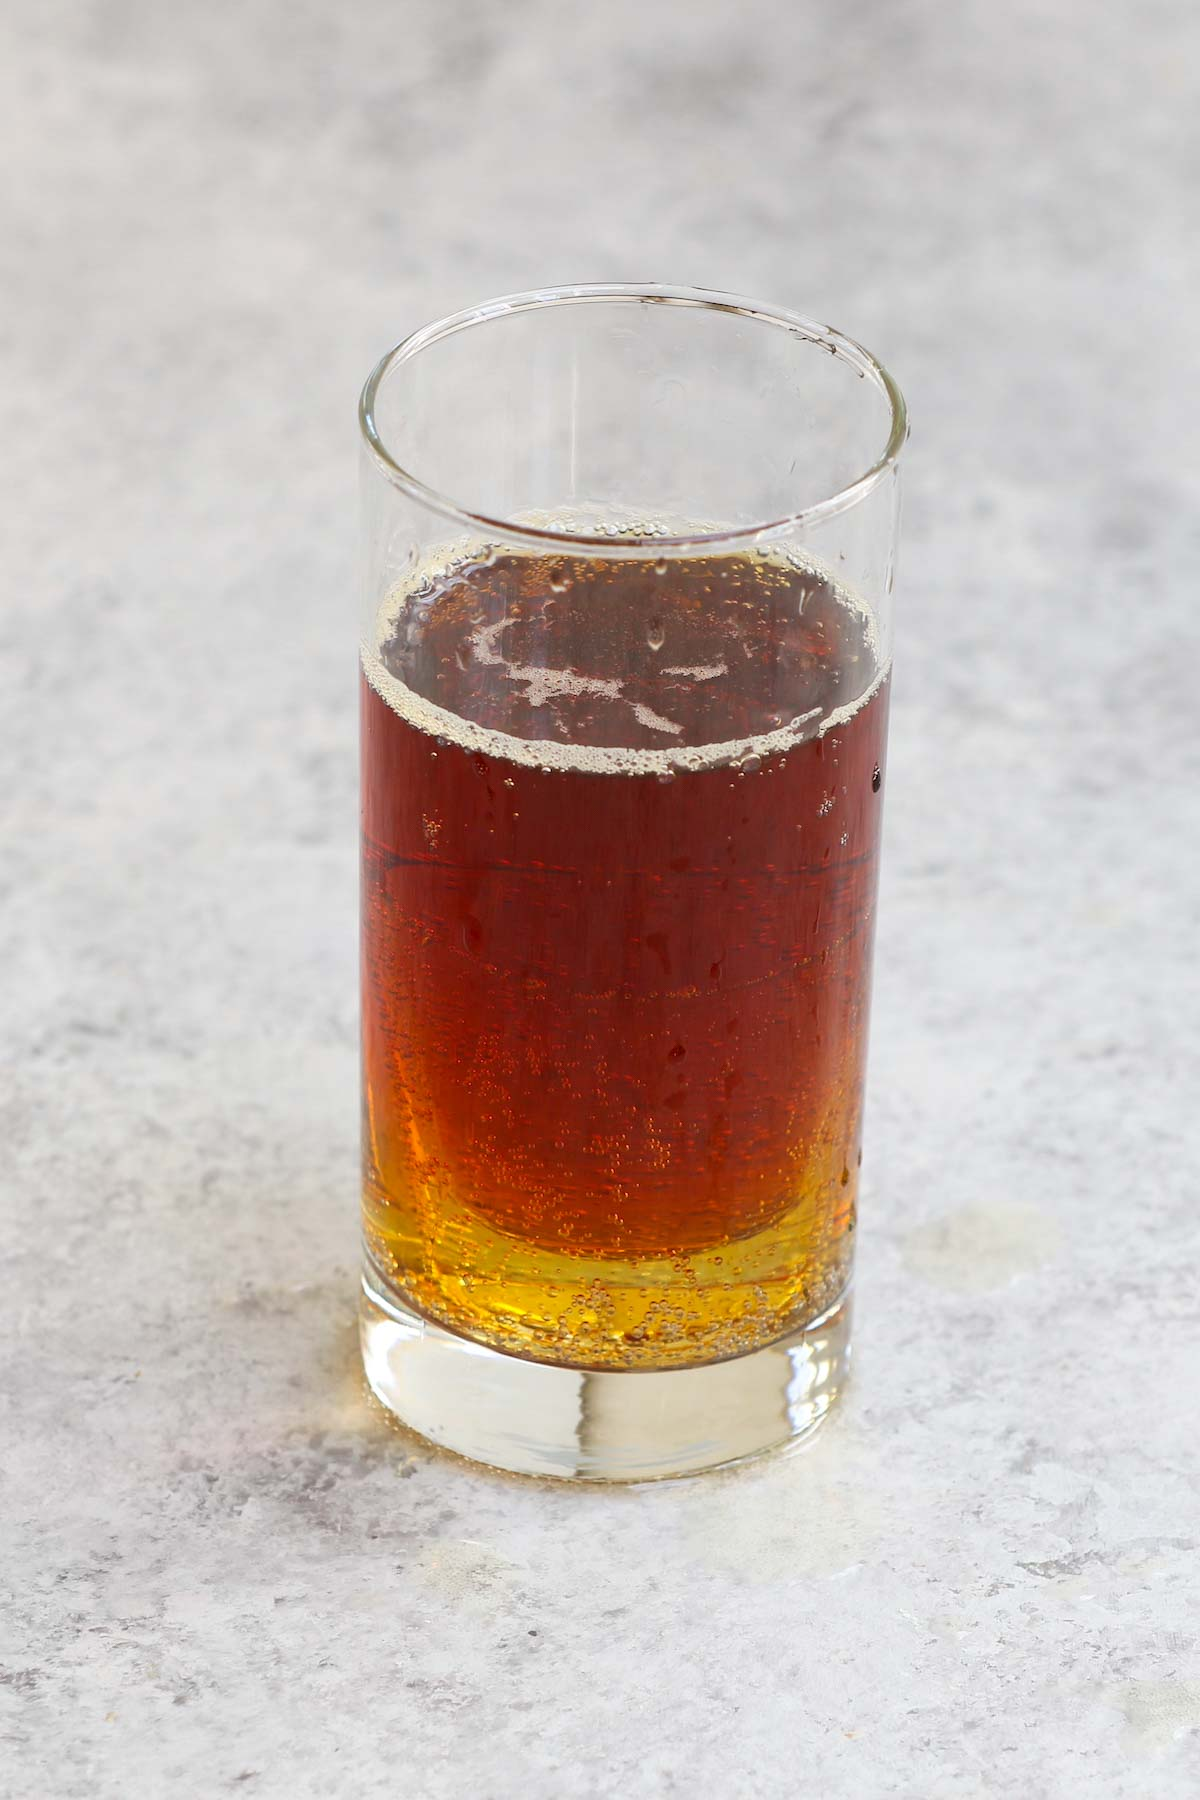 Jager Bomb or Jägerbomb is a simple cocktail that takes 3 minutes to make, but don't underestimate its ability to get a party started! Every bartender knows this popular drink and it has only 2 ingredients – Jägermeister shot and Red Bull energy drink.